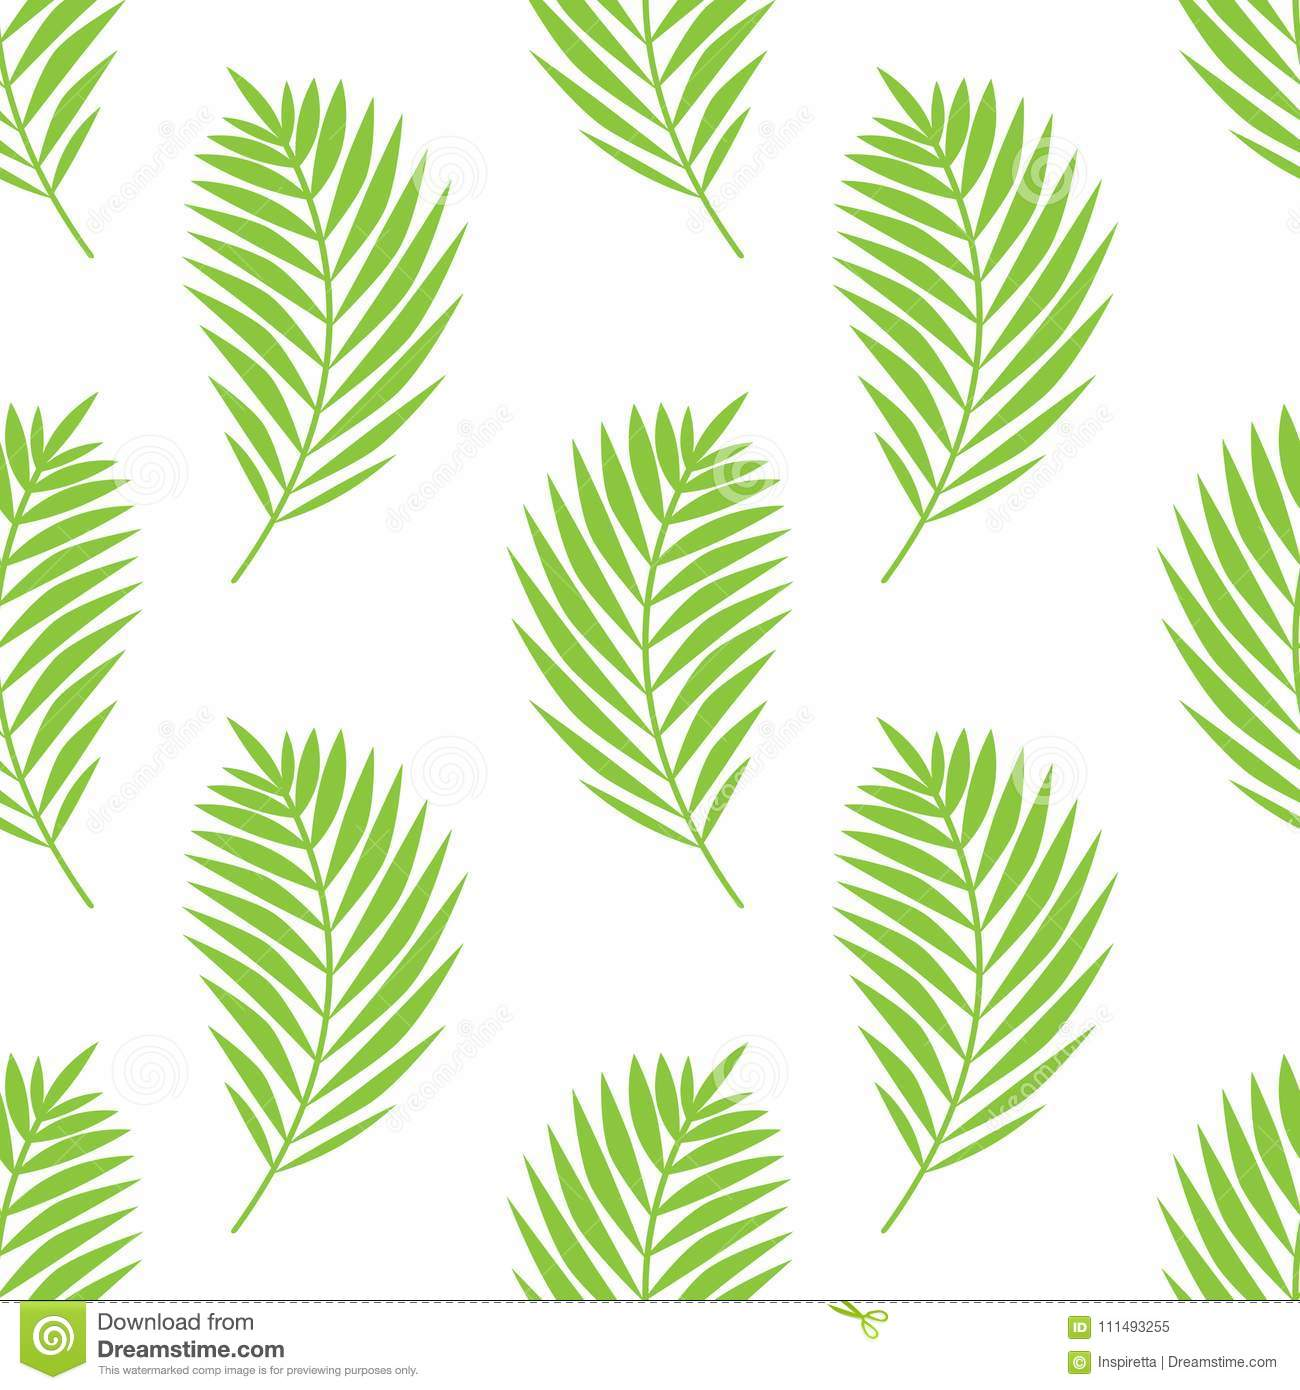 Simple elegant pattern with palm leaves. Green tropical brunches